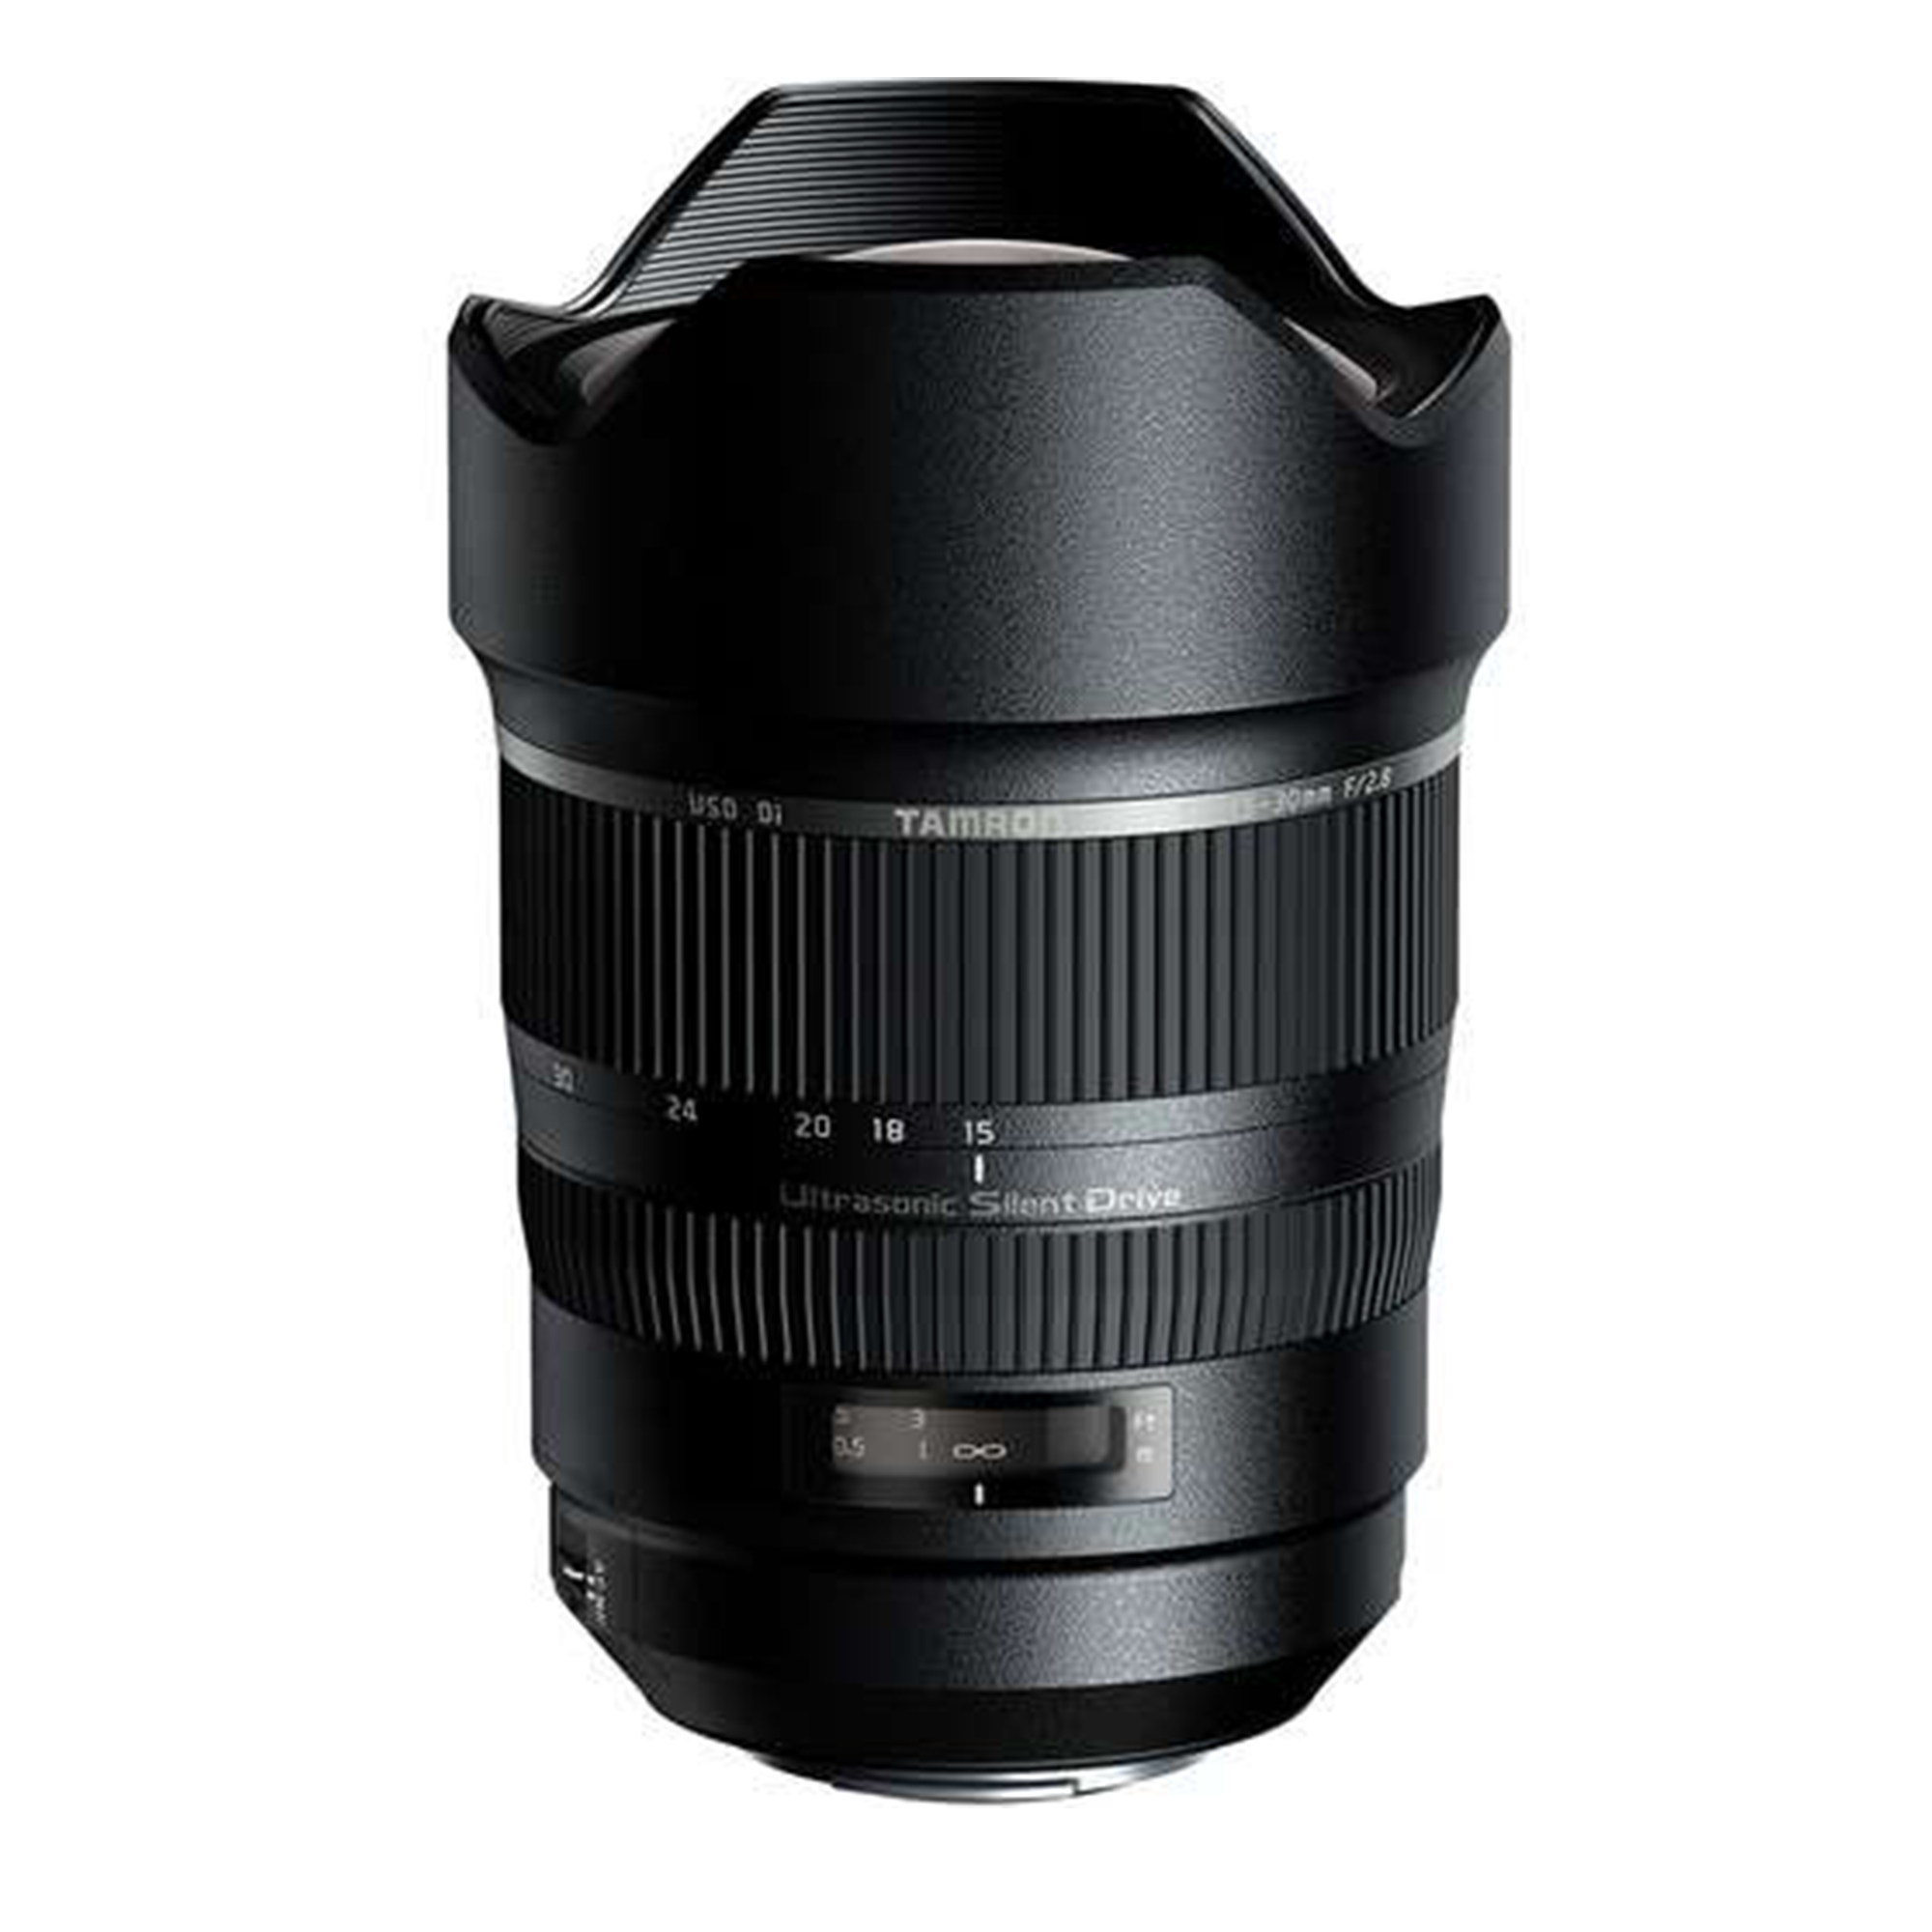 Tamron SP 15-30mm f / 2.8 Di VC USD Lens for Canon